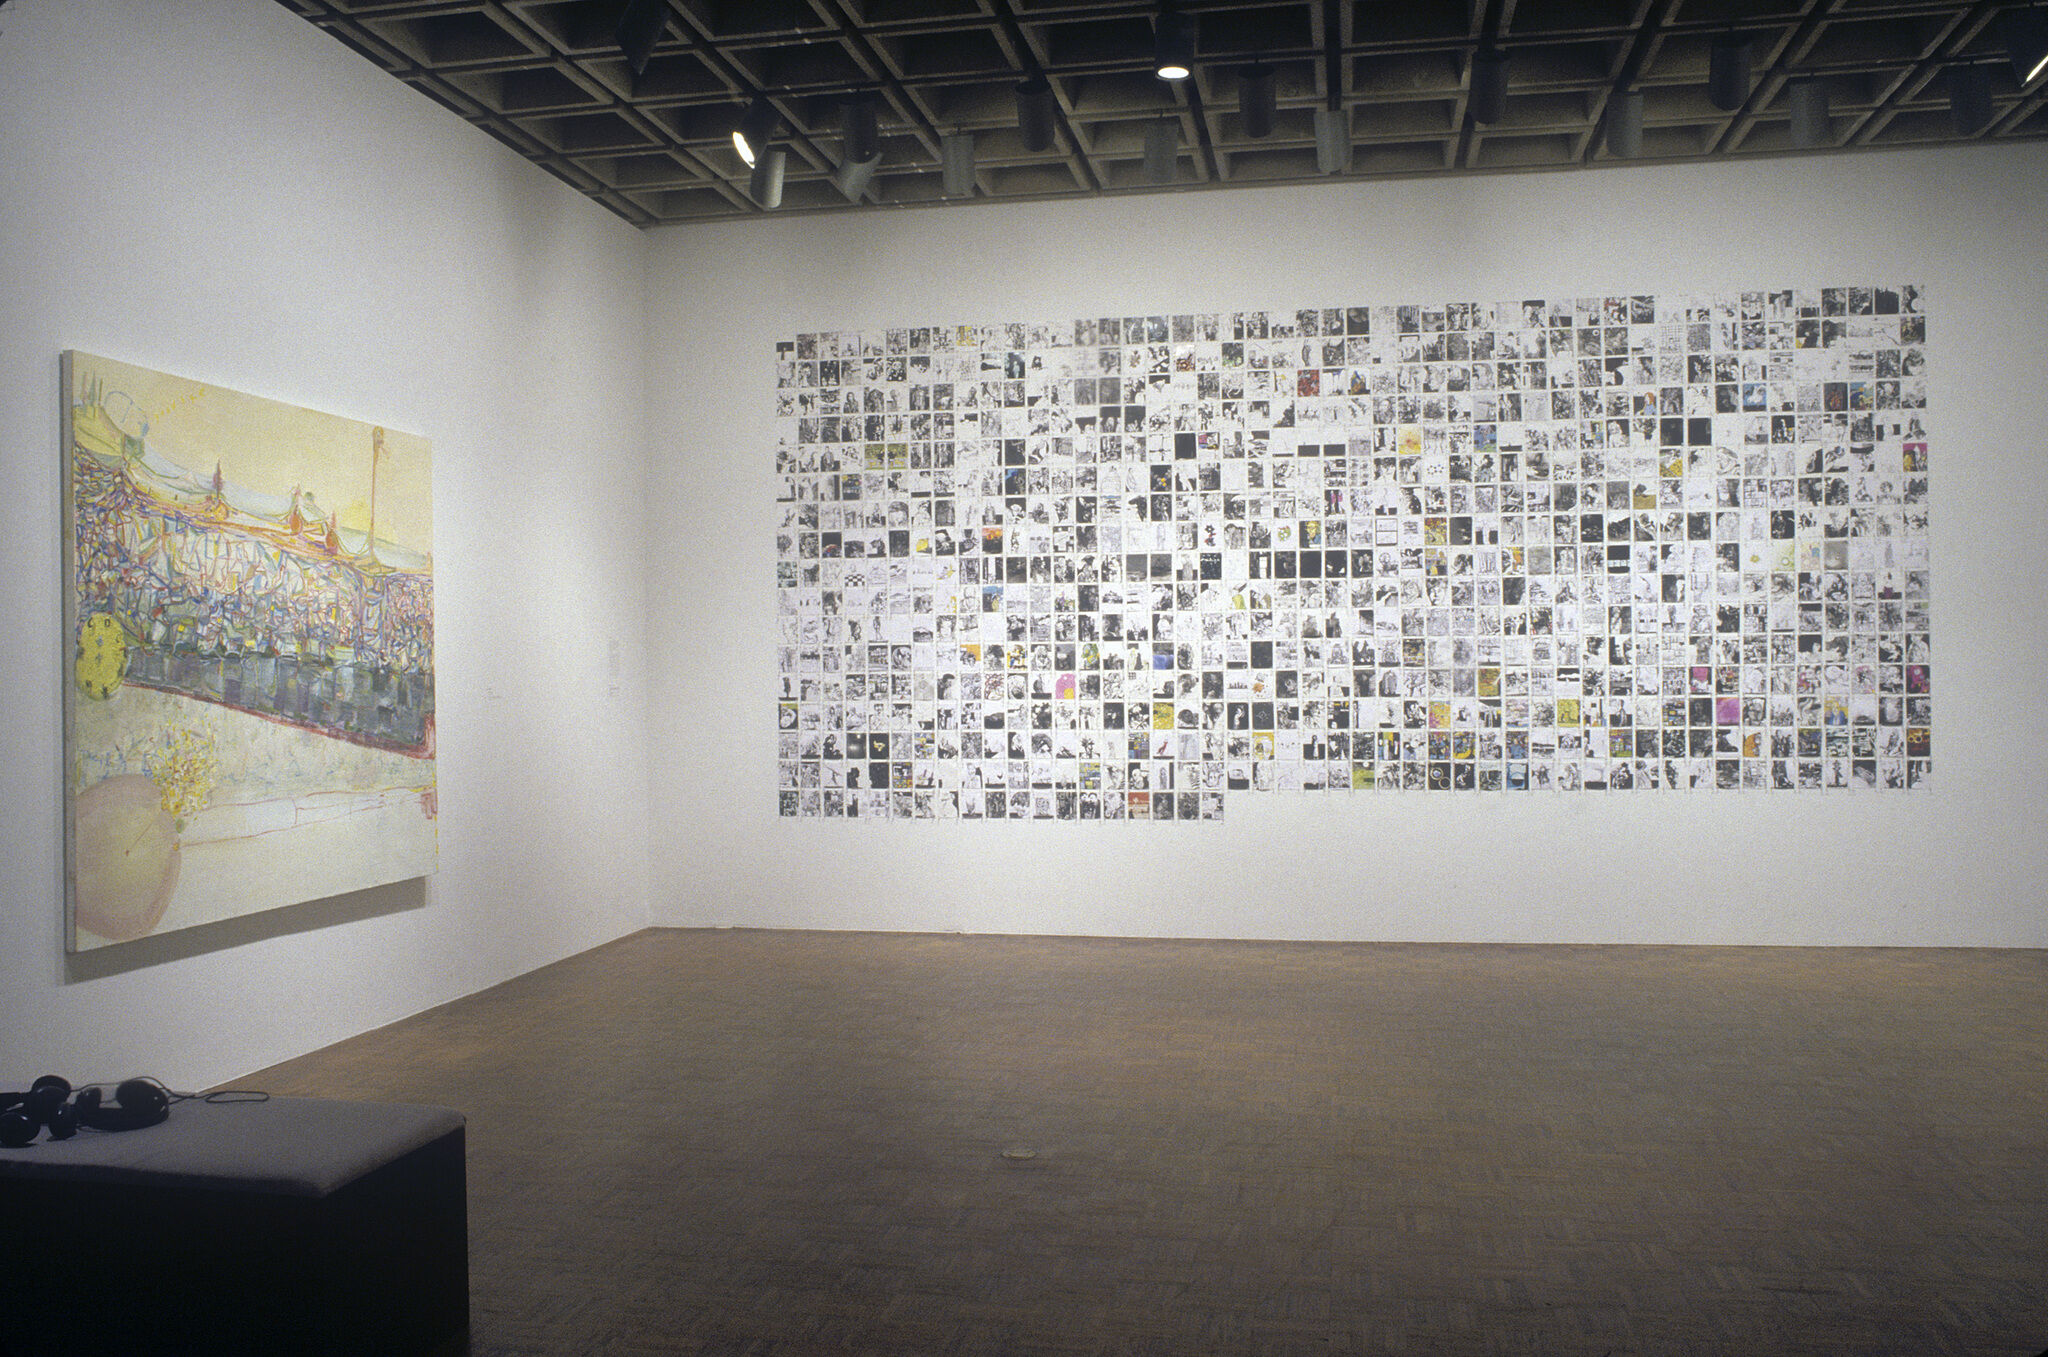 A gallery wall filled with tiny drawings that create a grid, along with a large painting displayed on another wall.